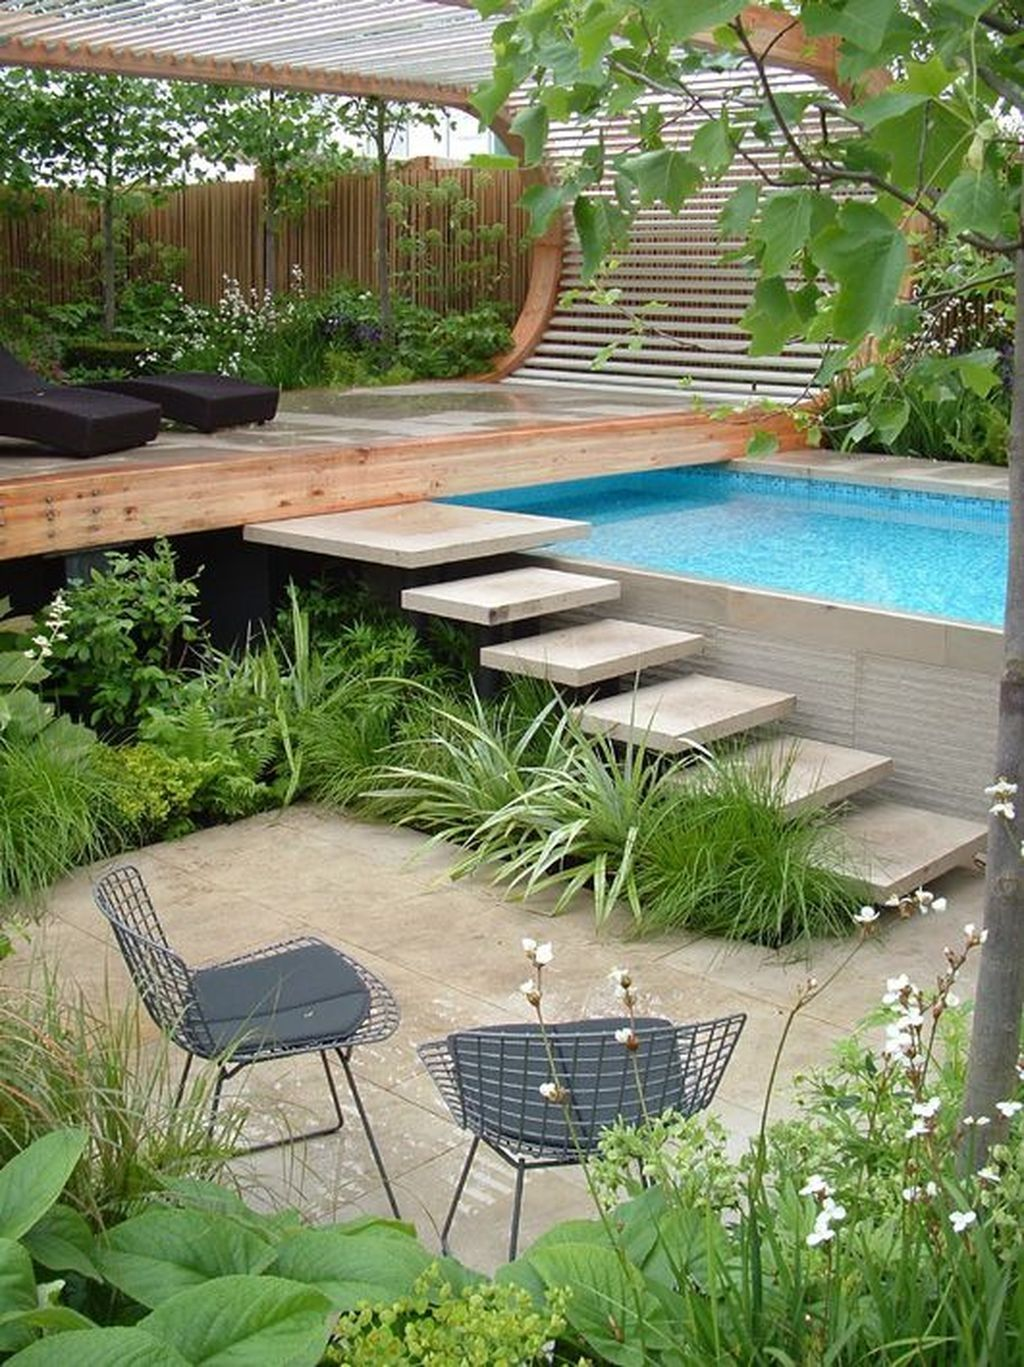 Amazing Landscaping Ideas For Small Budgets: 47 Amazing Modern Garden Design Ideas